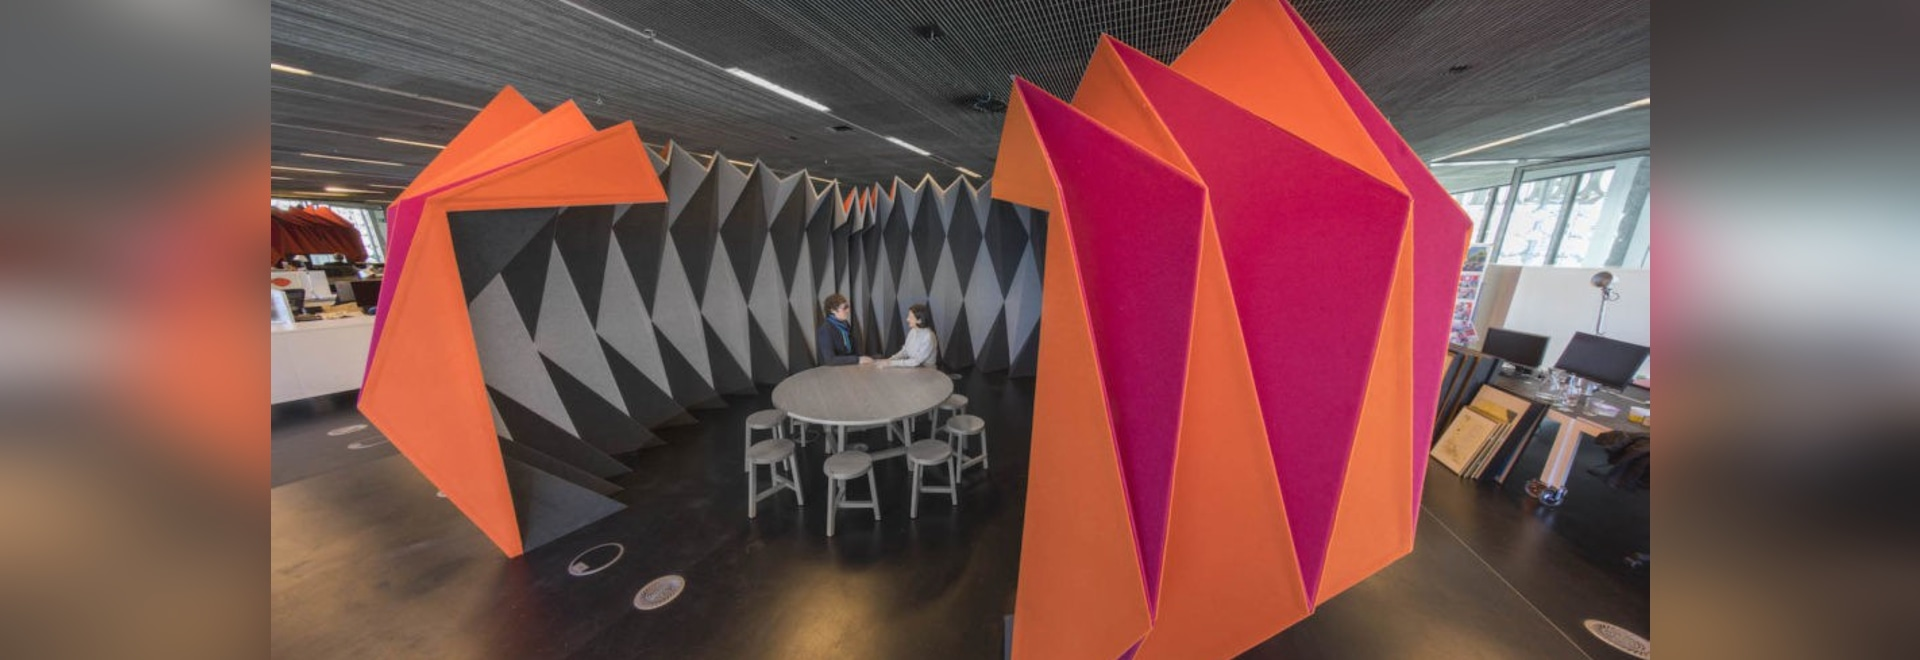 Sound-absorbing materials fold into a giant origami-like meeting pod